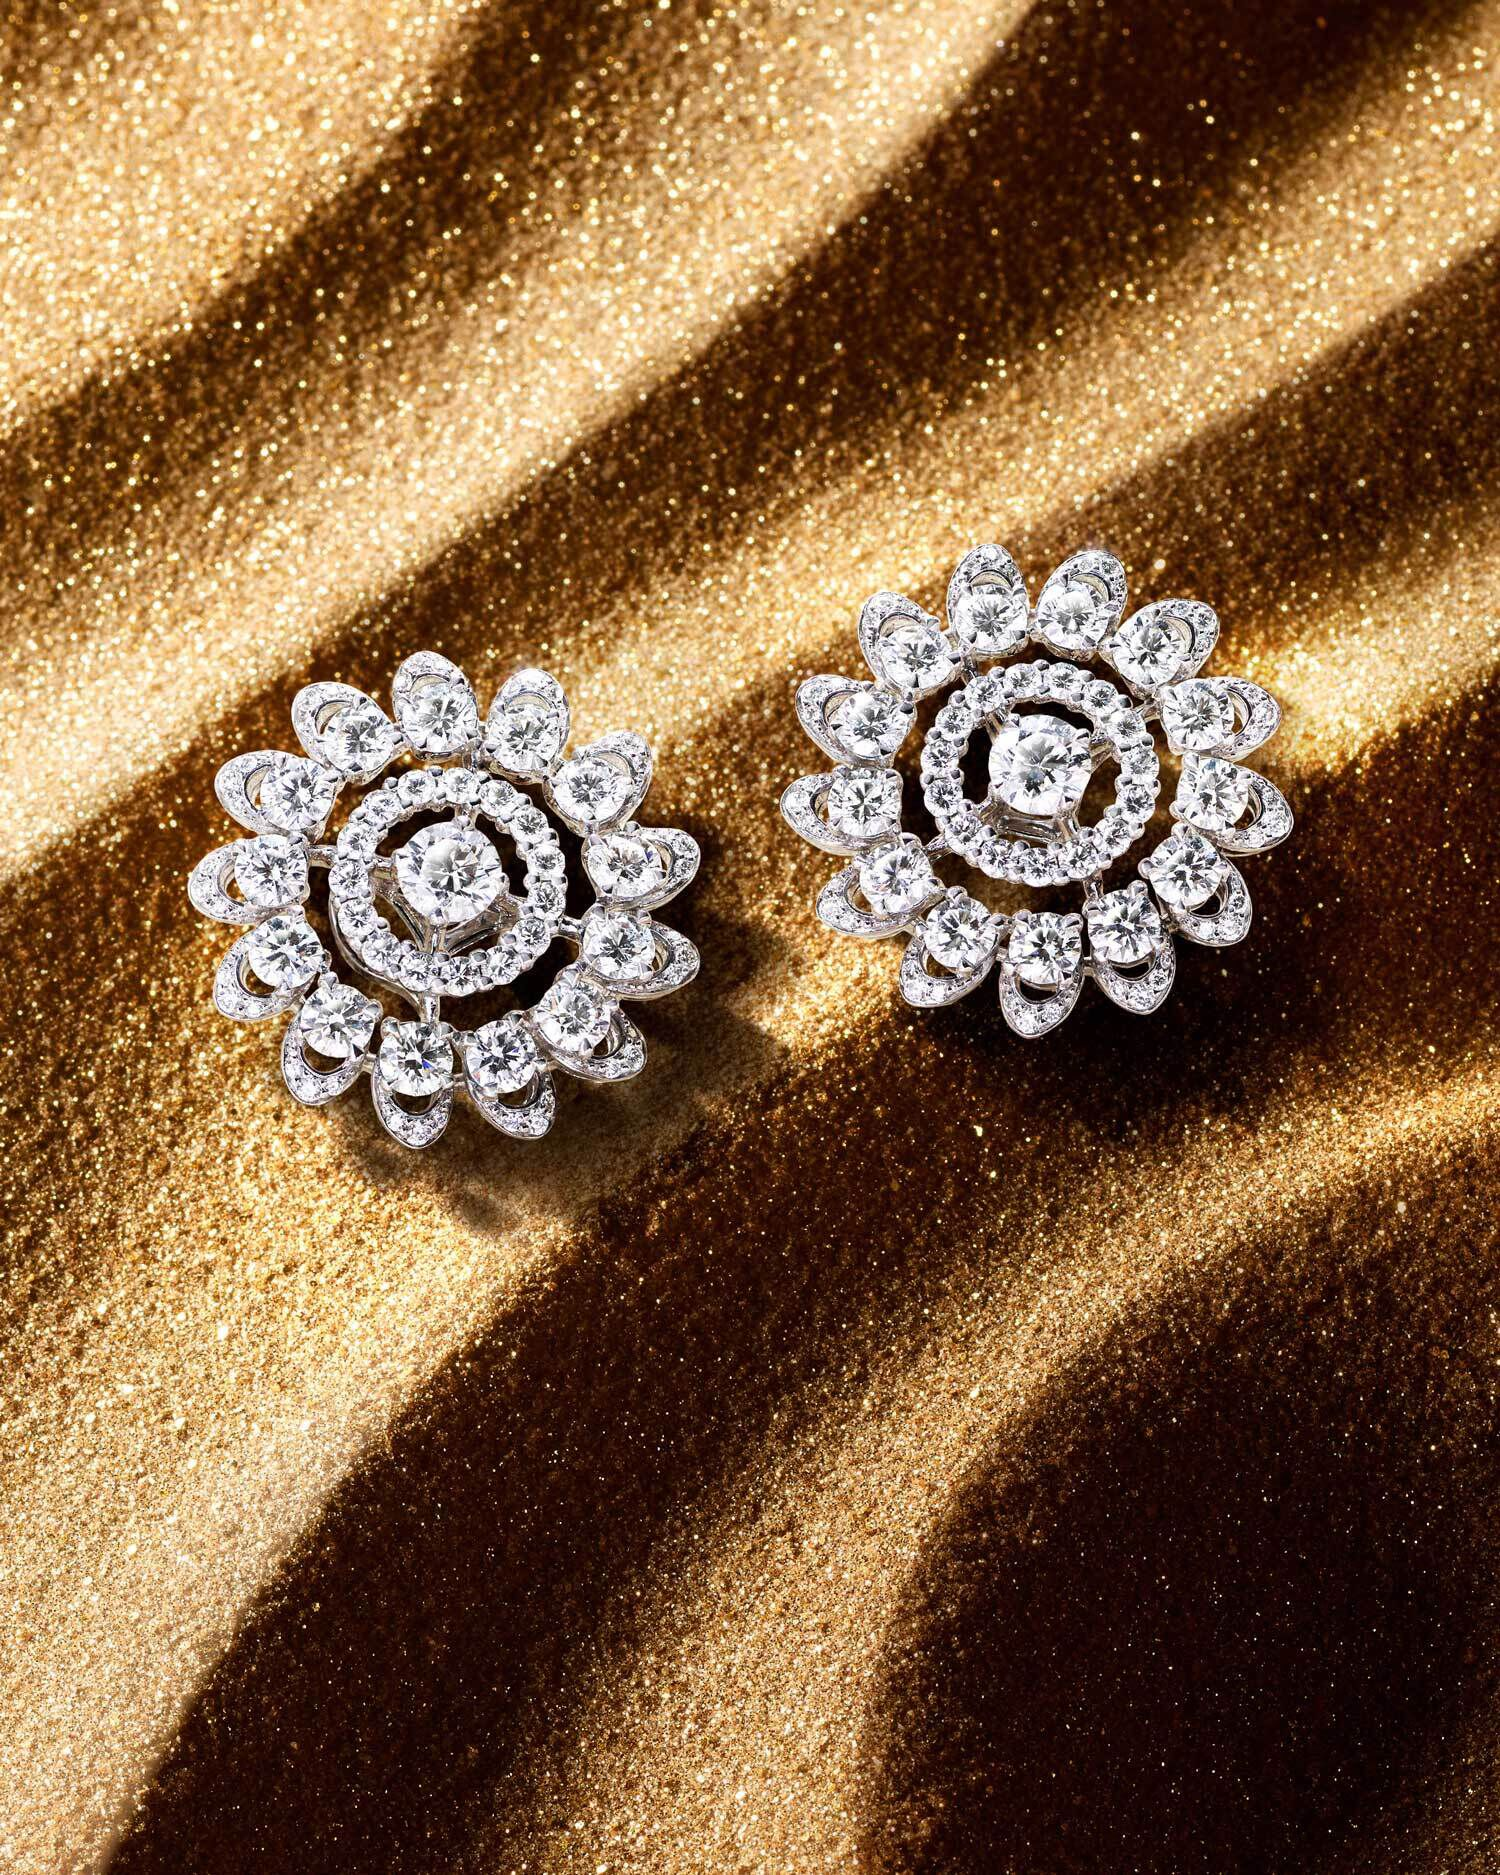 The abstract Graff Gateway motif is showcased in a pair of diamond earrings